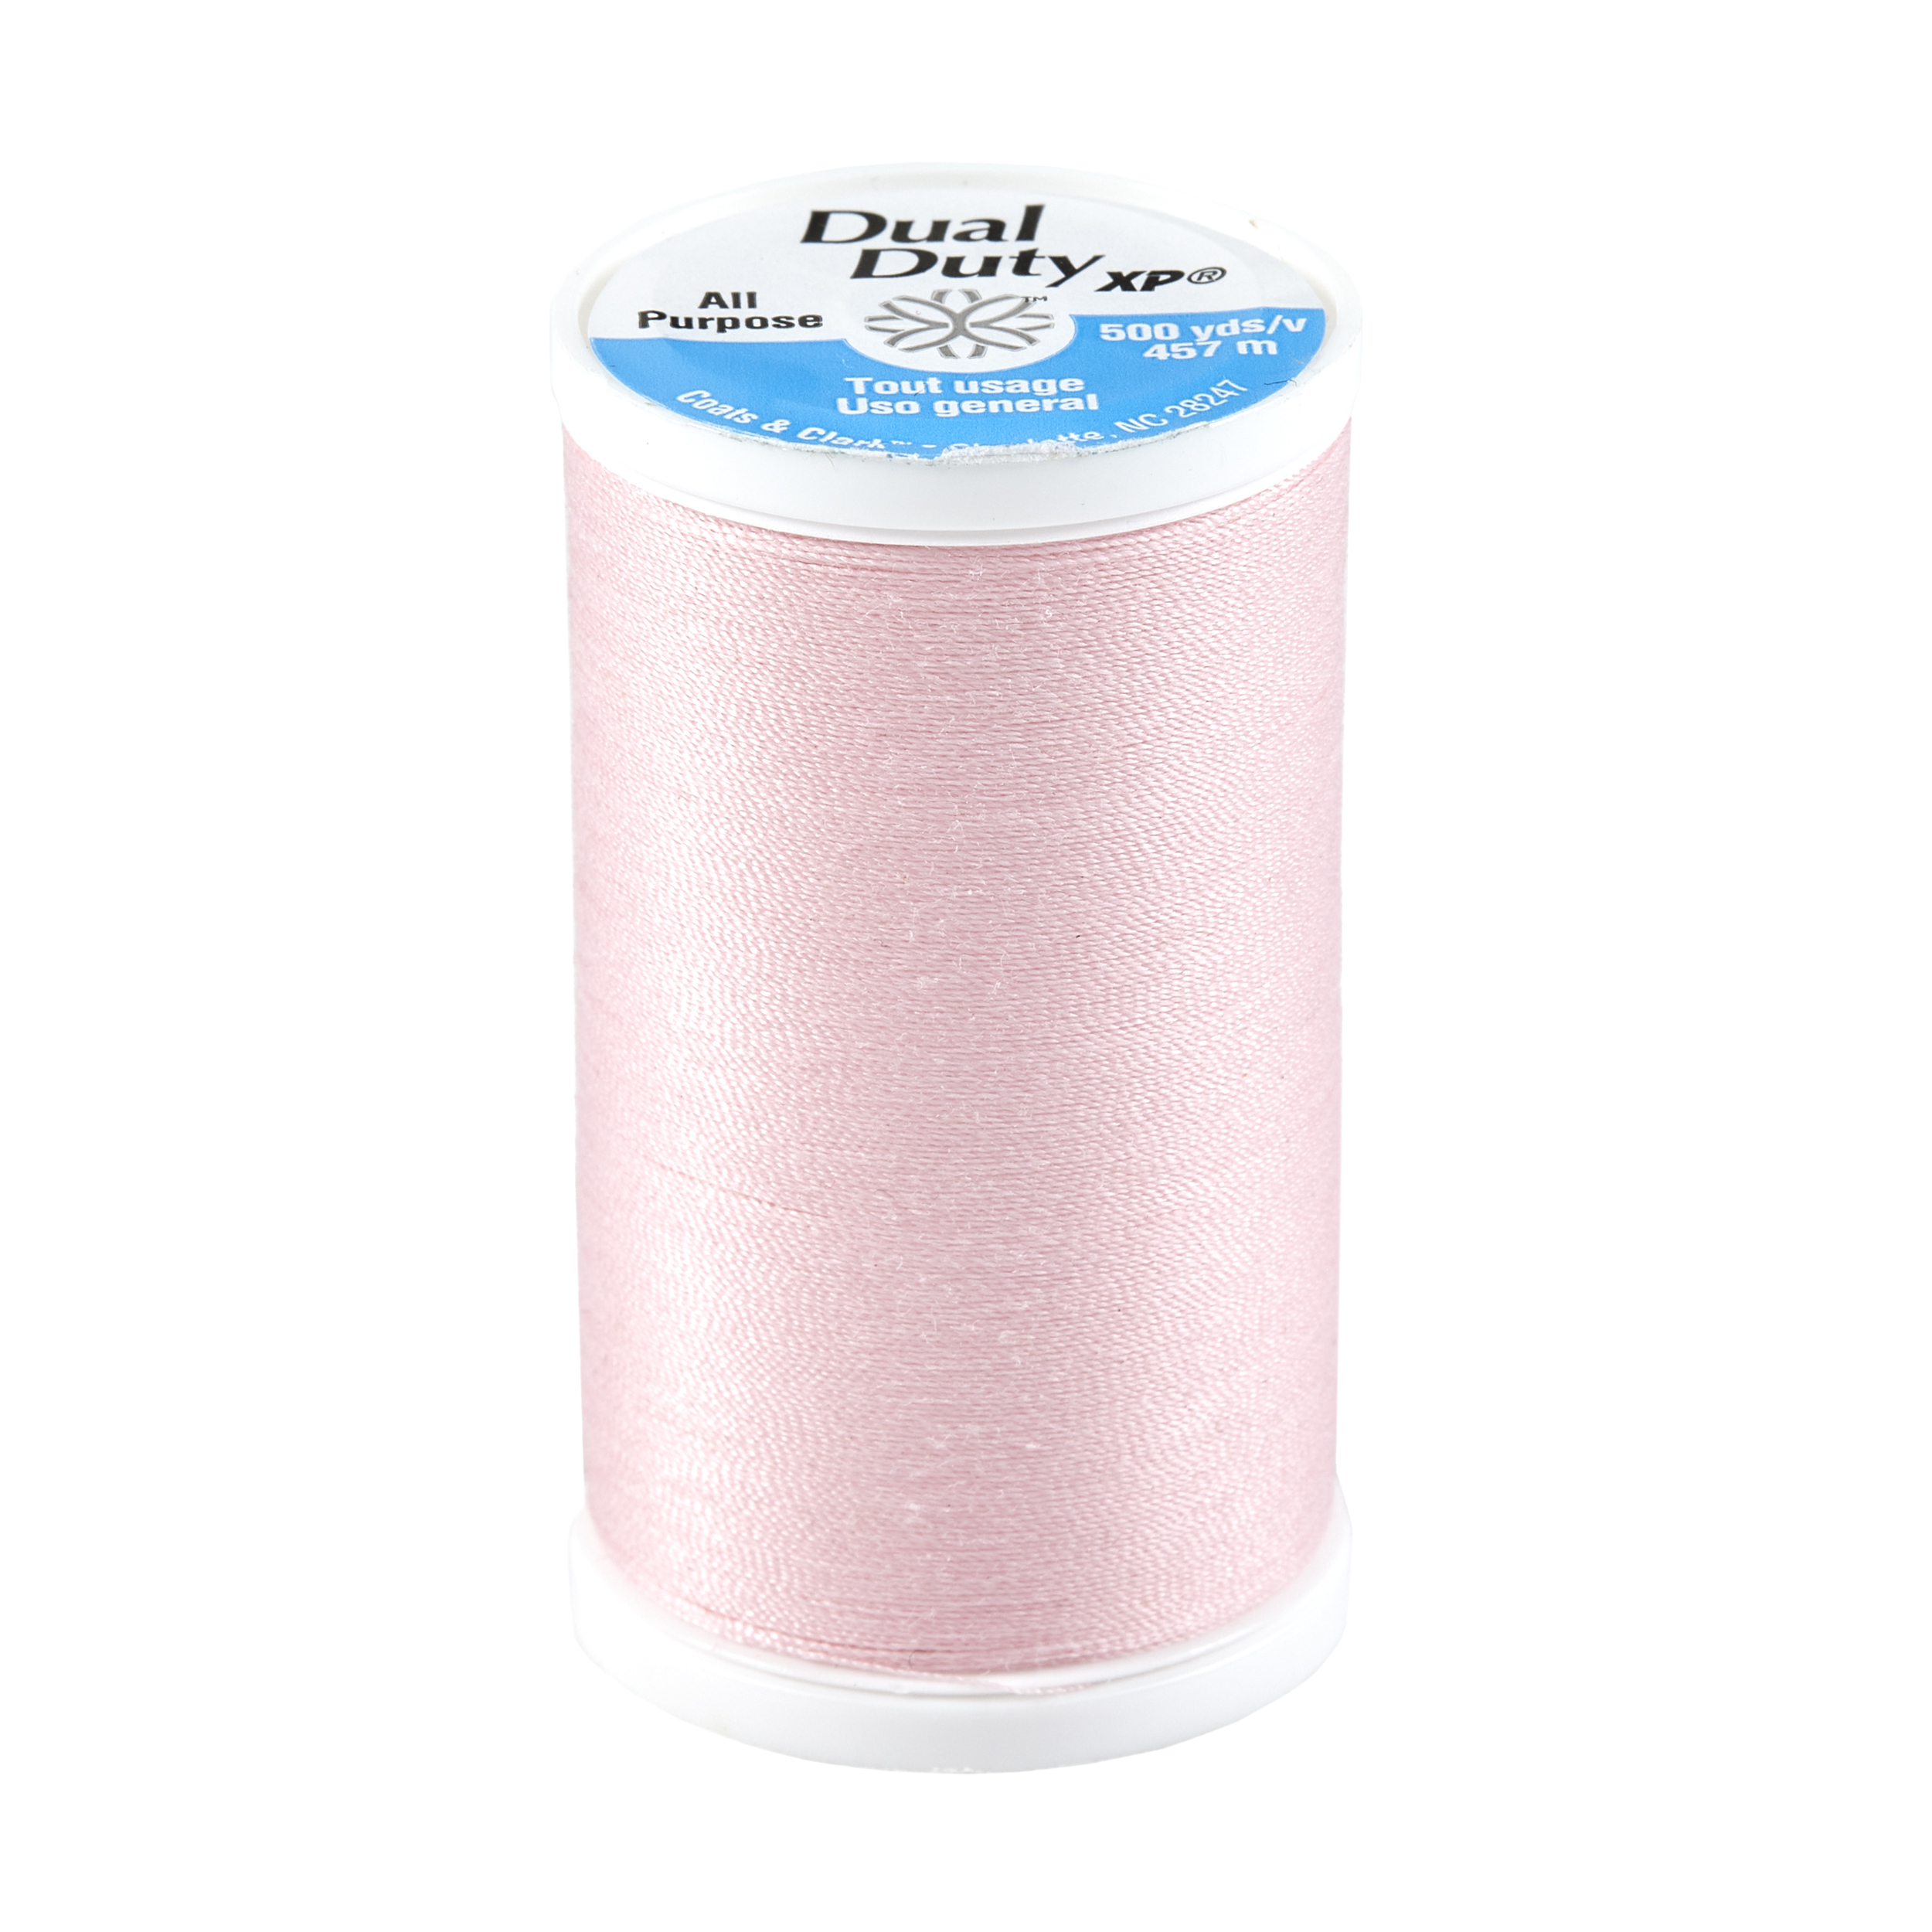 Dual Duty XP General Purpose Thread 500 YD Pink